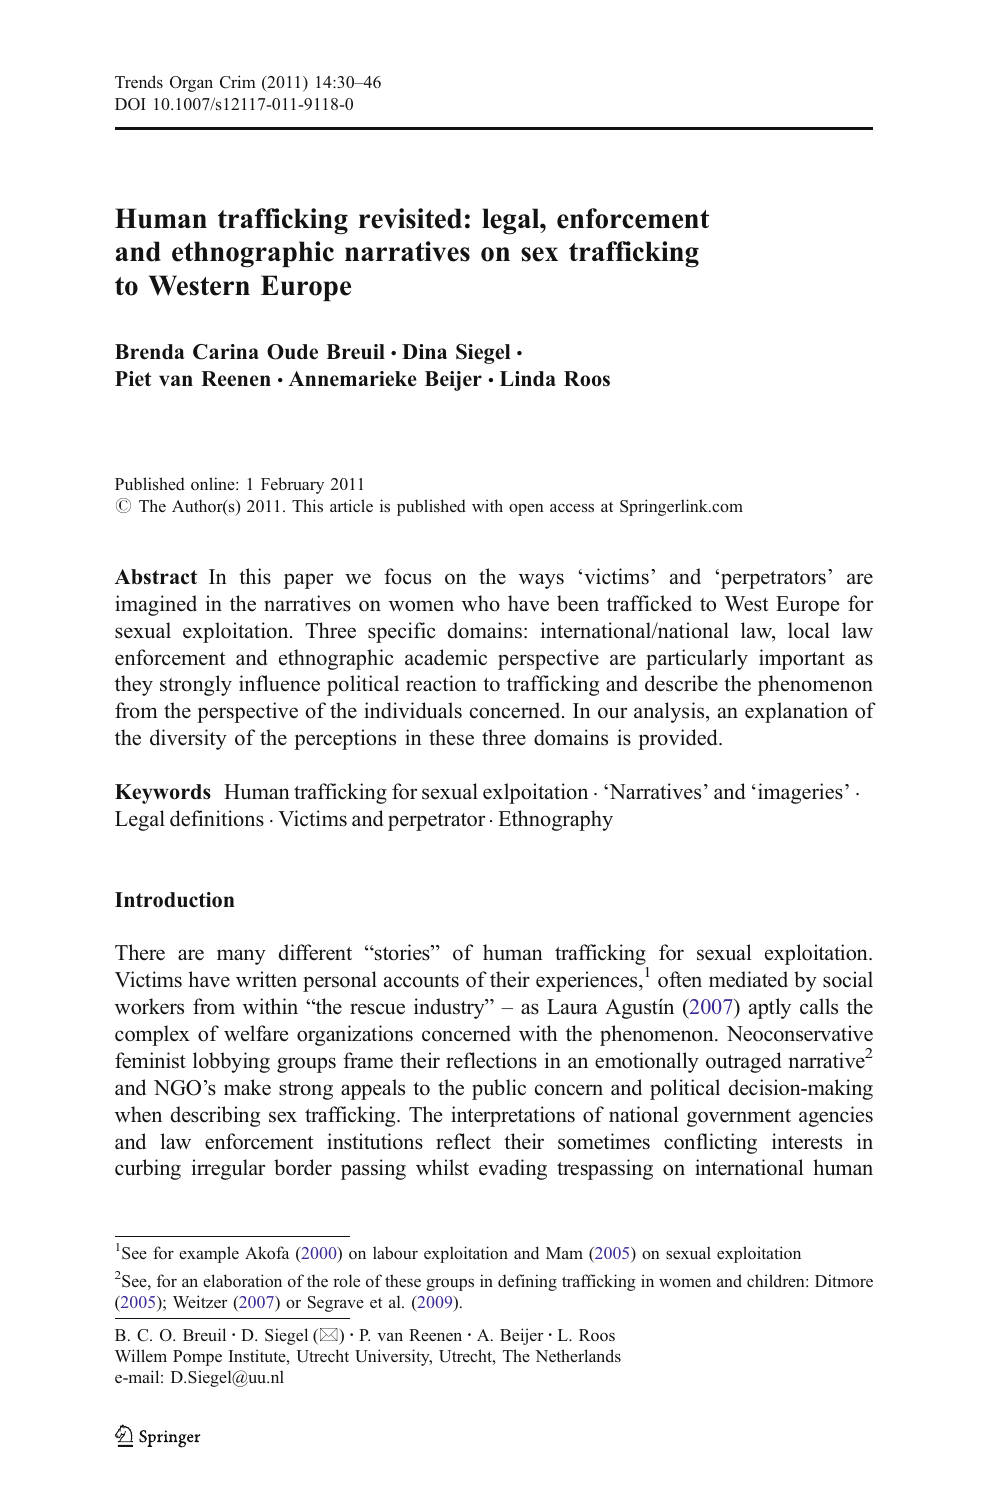 Human trafficking revisited: legal, enforcement and ethnographic narratives  on sex trafficking to Western Europe – topic of research paper in Law.  Download scholarly article PDF and read for free on CyberLeninka open